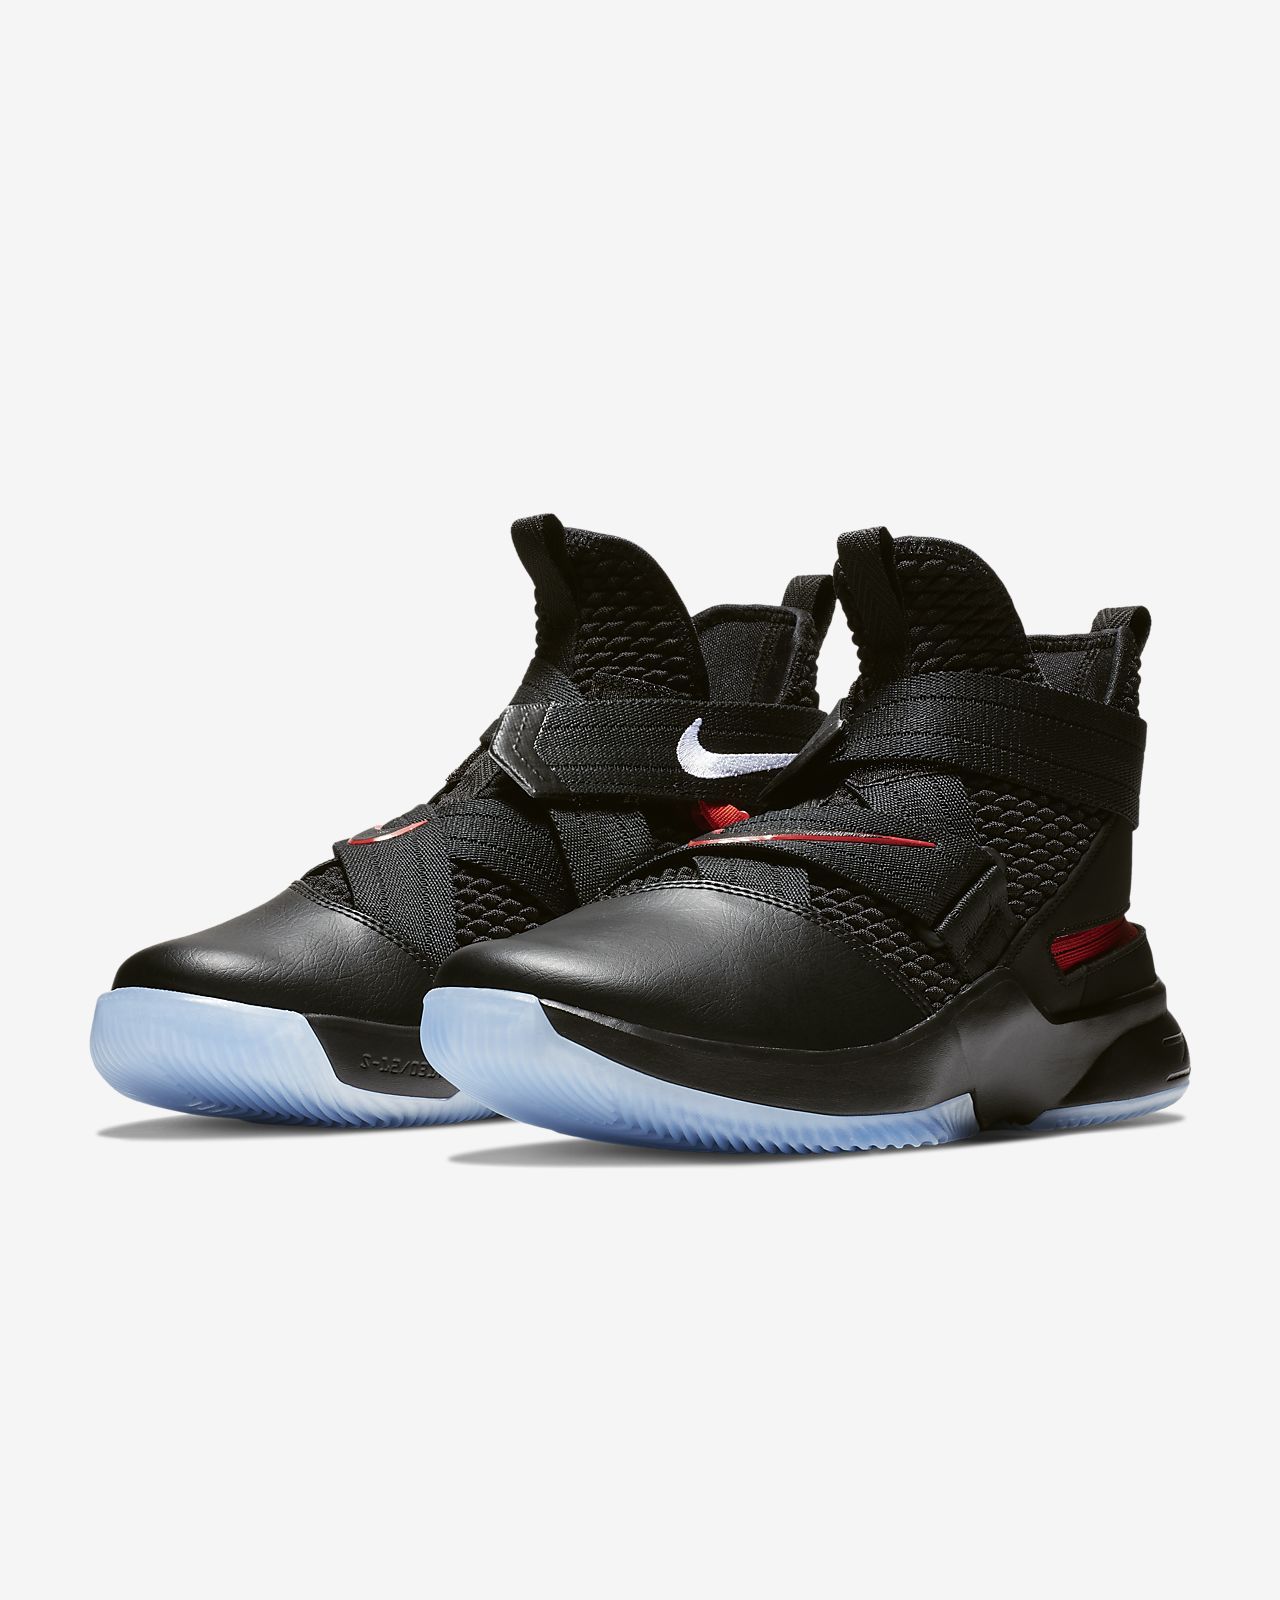 99f1c1ceac0 LeBron Soldier 12 FlyEase Men s Basketball Shoe. Nike.com SI